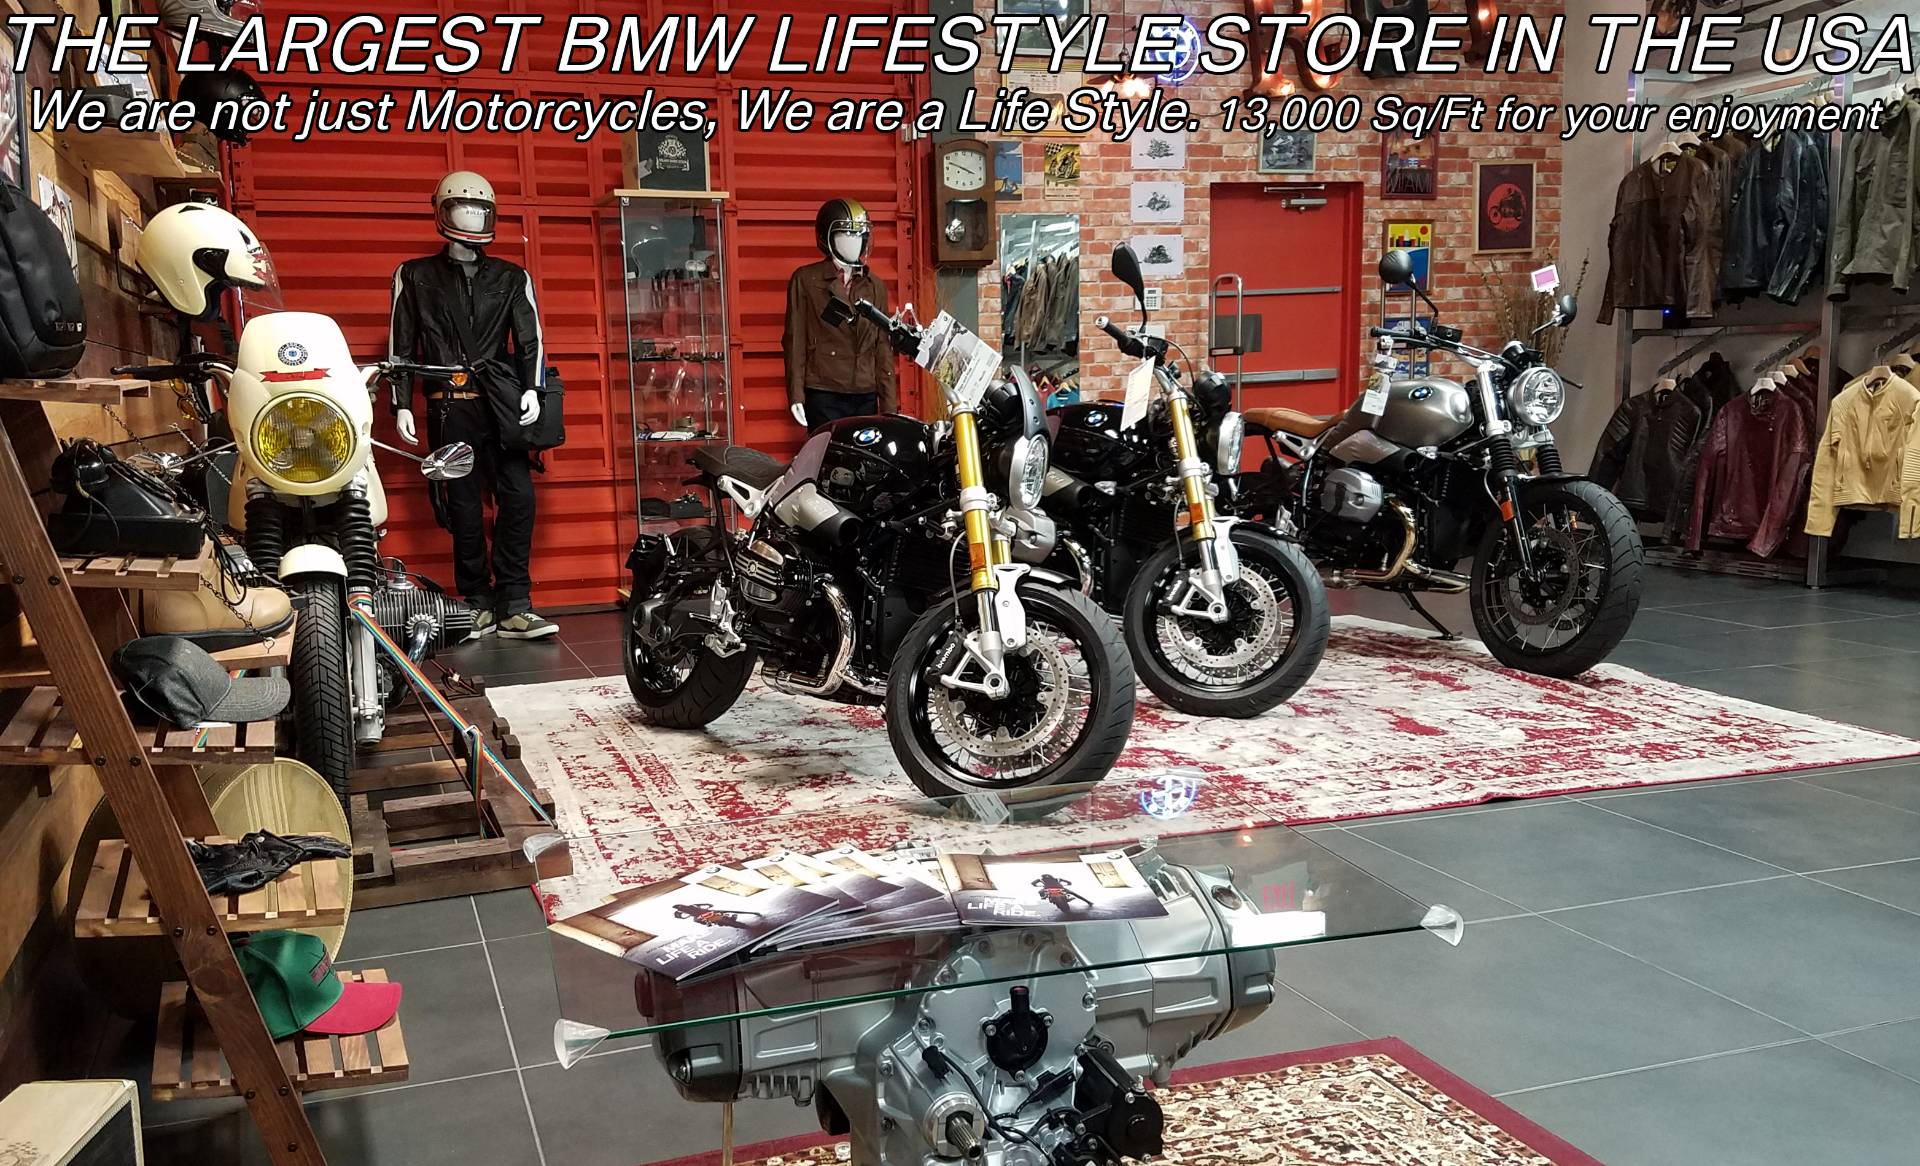 Used 2015 BMW R 1200 GSA for sale, BMW R 1200GSA for sale, BMW Motorcycle R1200GSA, used BMW Adventure, Dual, GS, BMW. BMW Motorcycles of Miami, Motorcycles of Miami, Motorcycles Miami, New Motorcycles, Used Motorcycles, pre-owned. #BMWMotorcyclesOfMiami #MotorcyclesOfMiami. - Photo 32